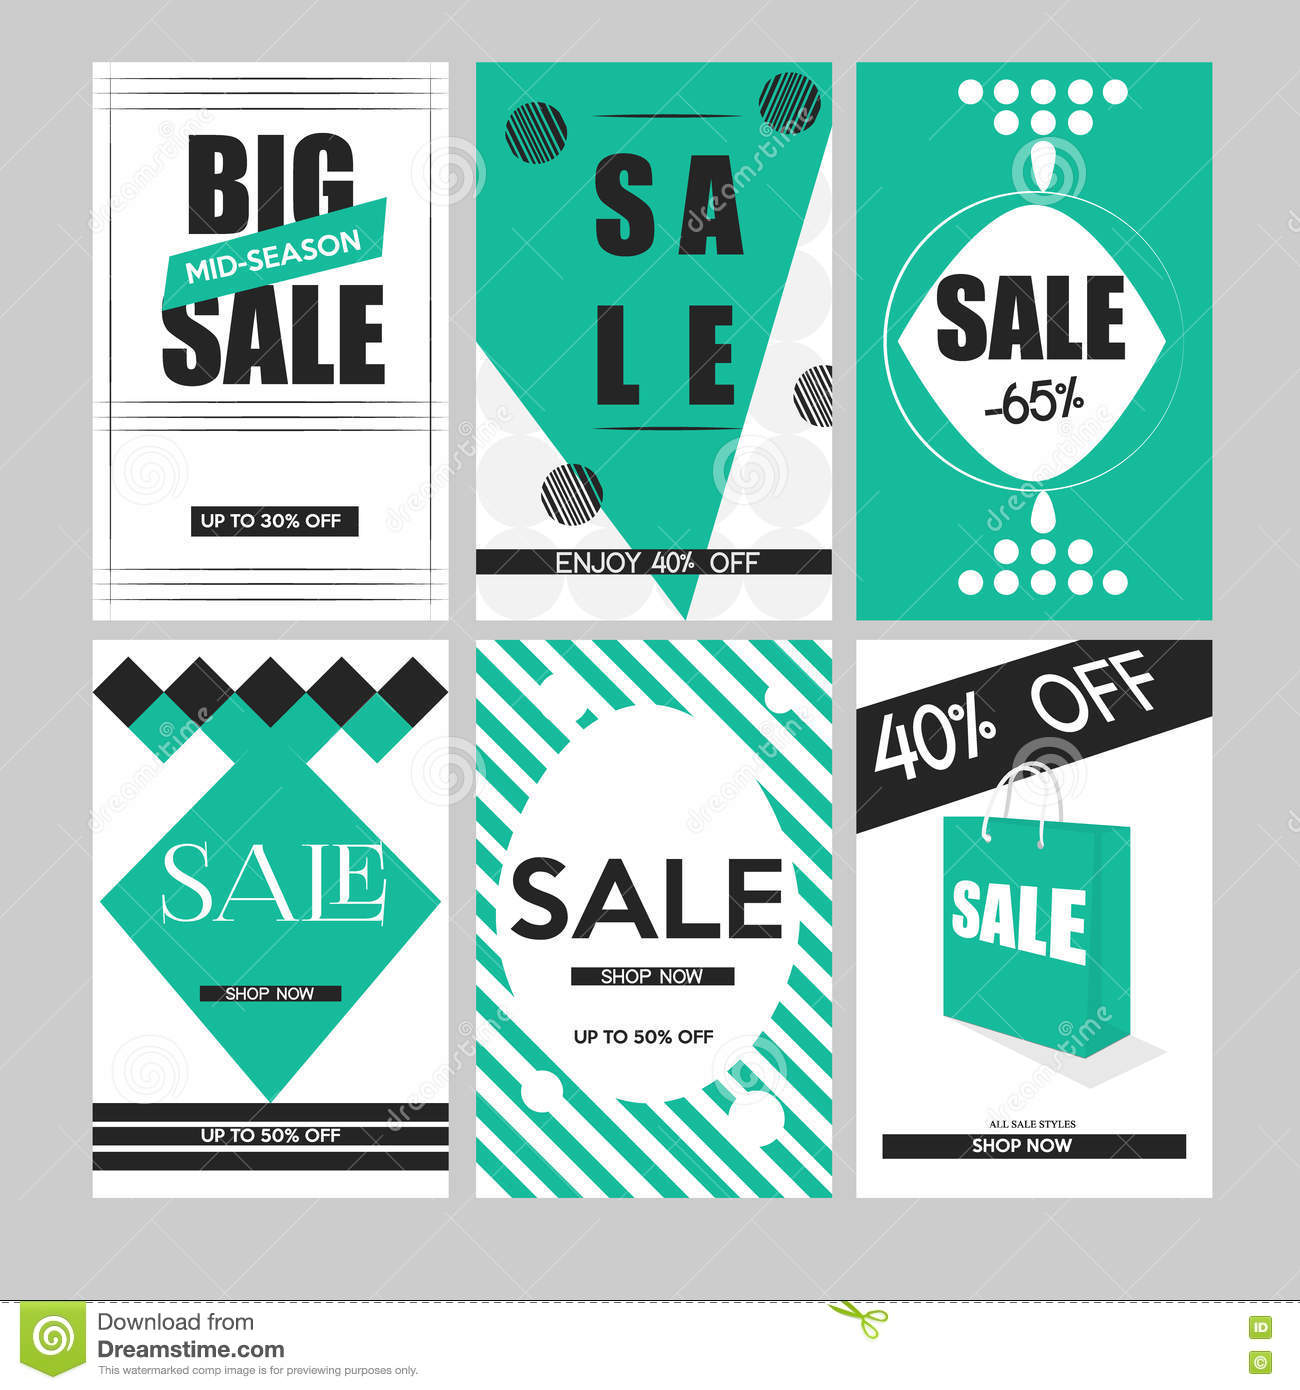 Poster design website - Set Of Mobile Banners For Online Shopping Vector Illustrations Website And Social Media Posters